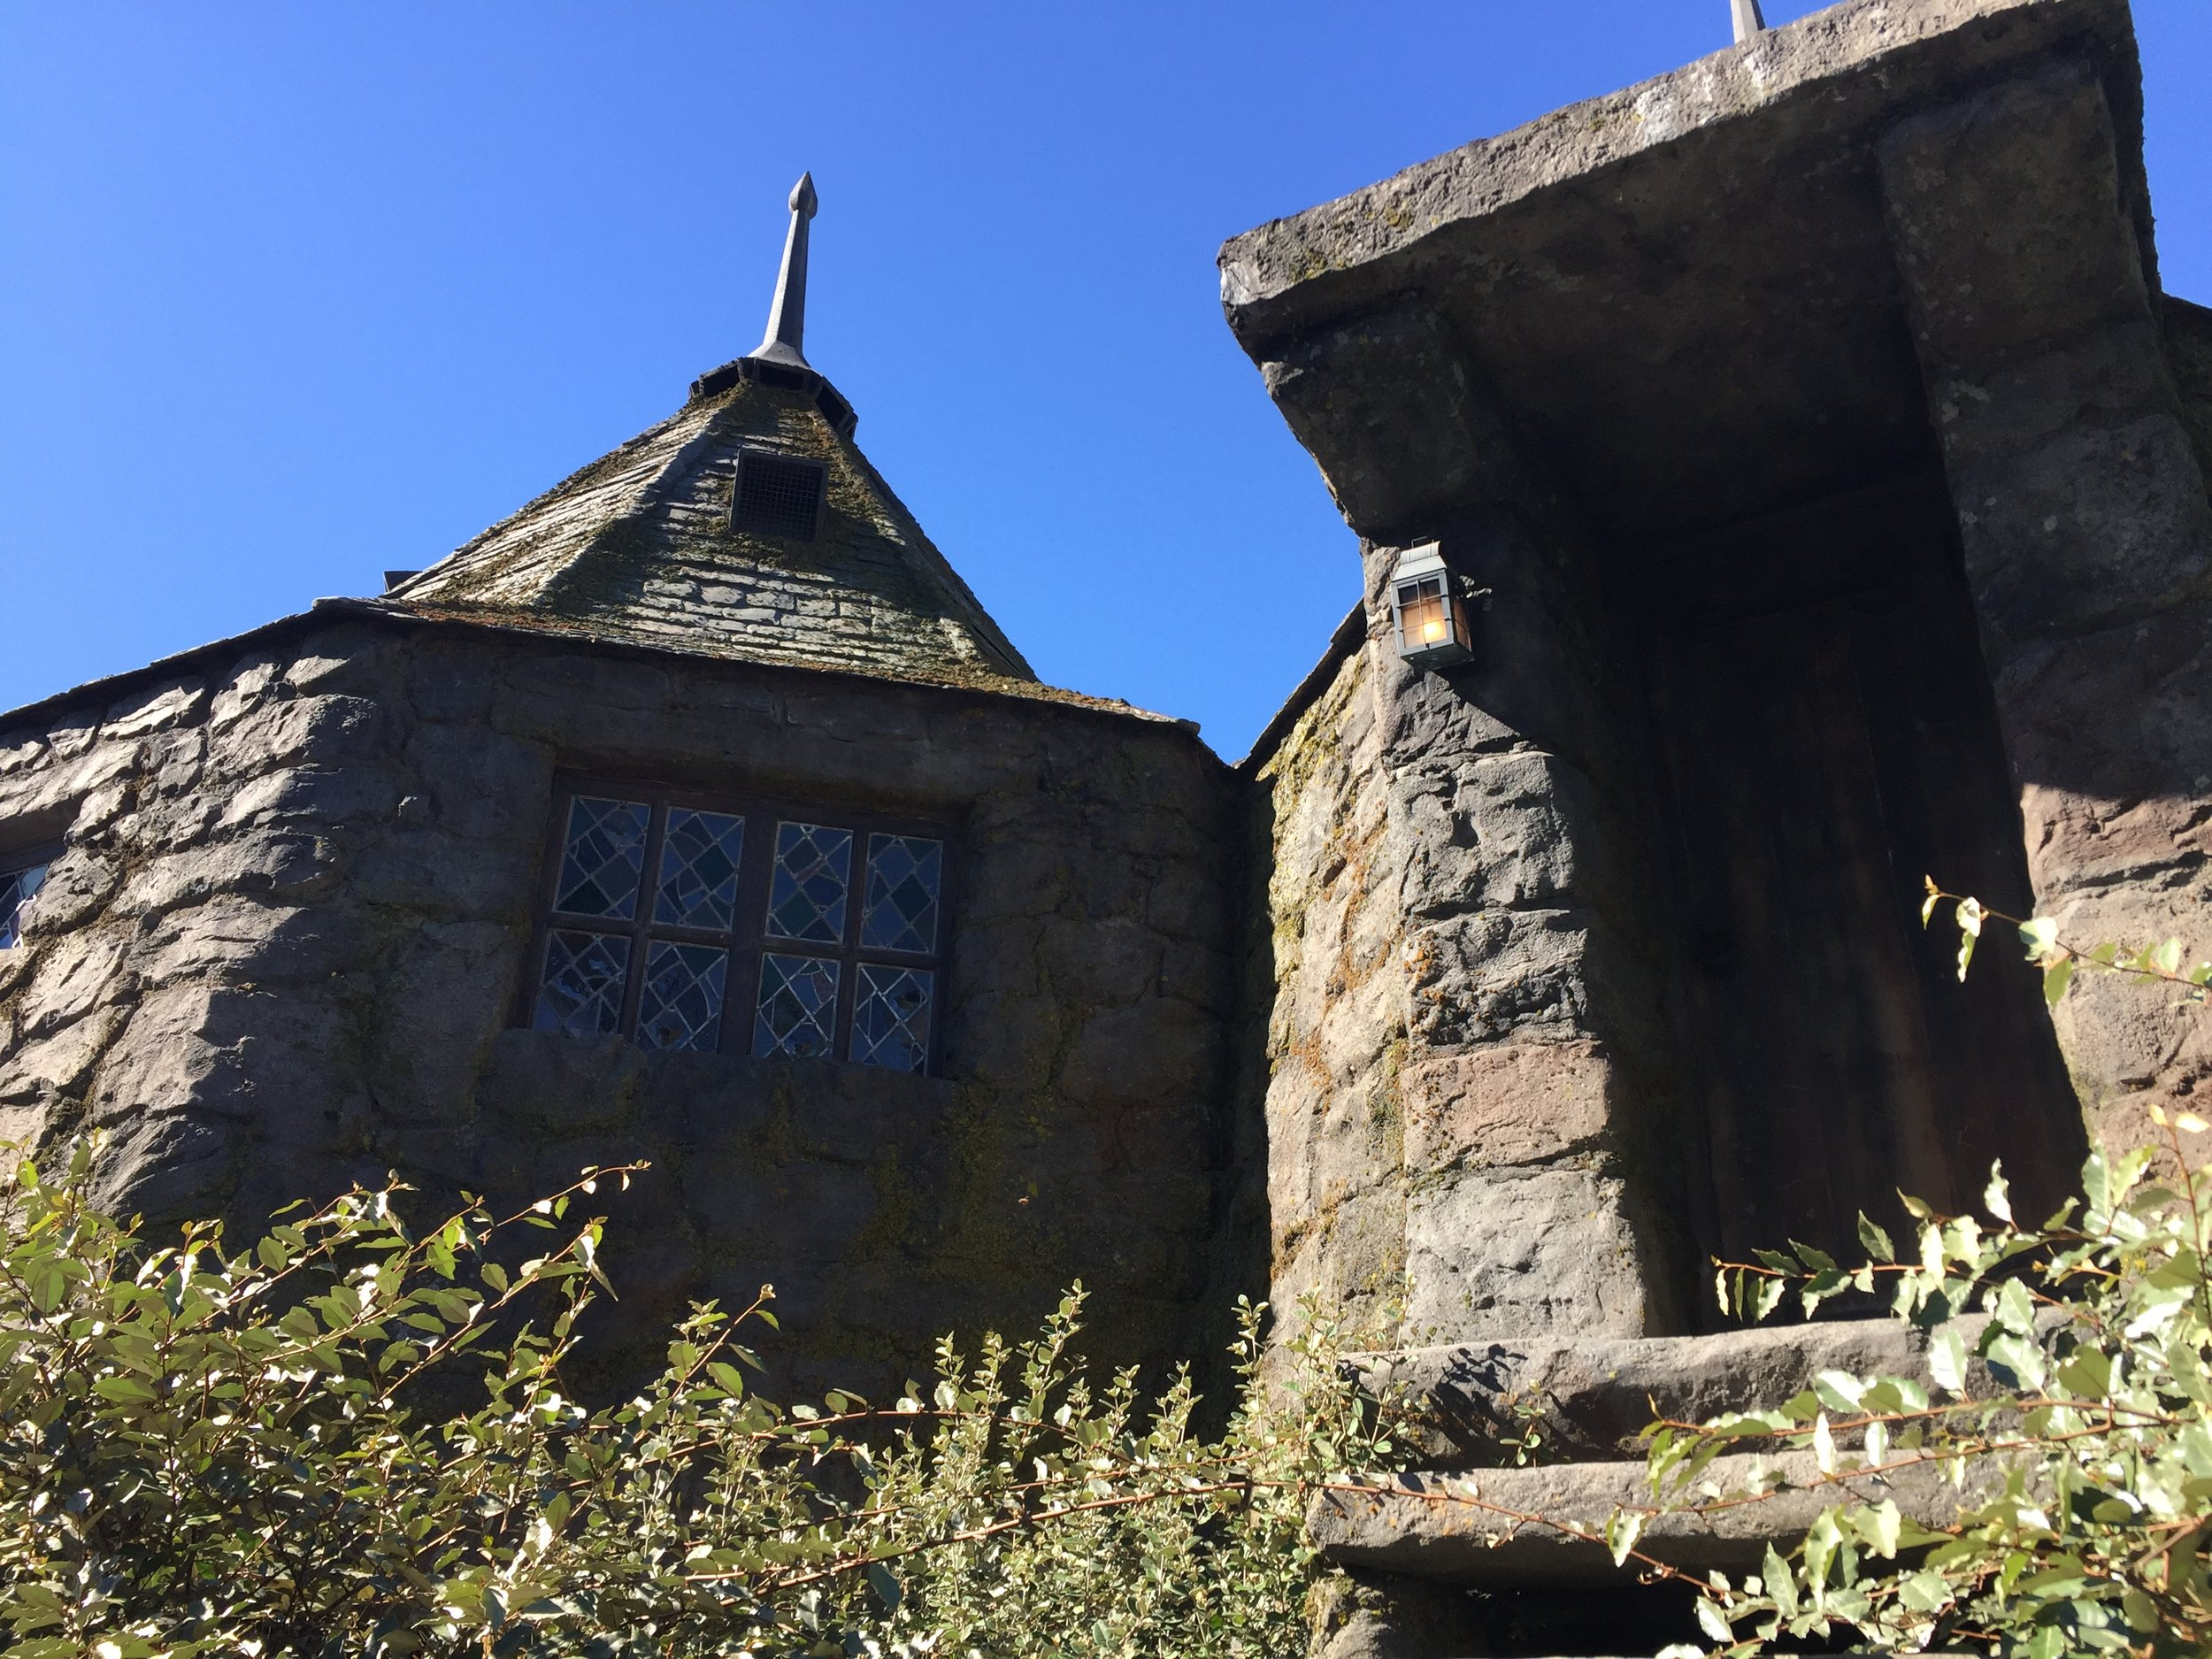 [image description: A life-size replica of Hagrid's Hut. It's a circular stone dwelling with stained glass windows and a large stone entrance with stone steps. The roof slopes upward steeply and has a long spire.]